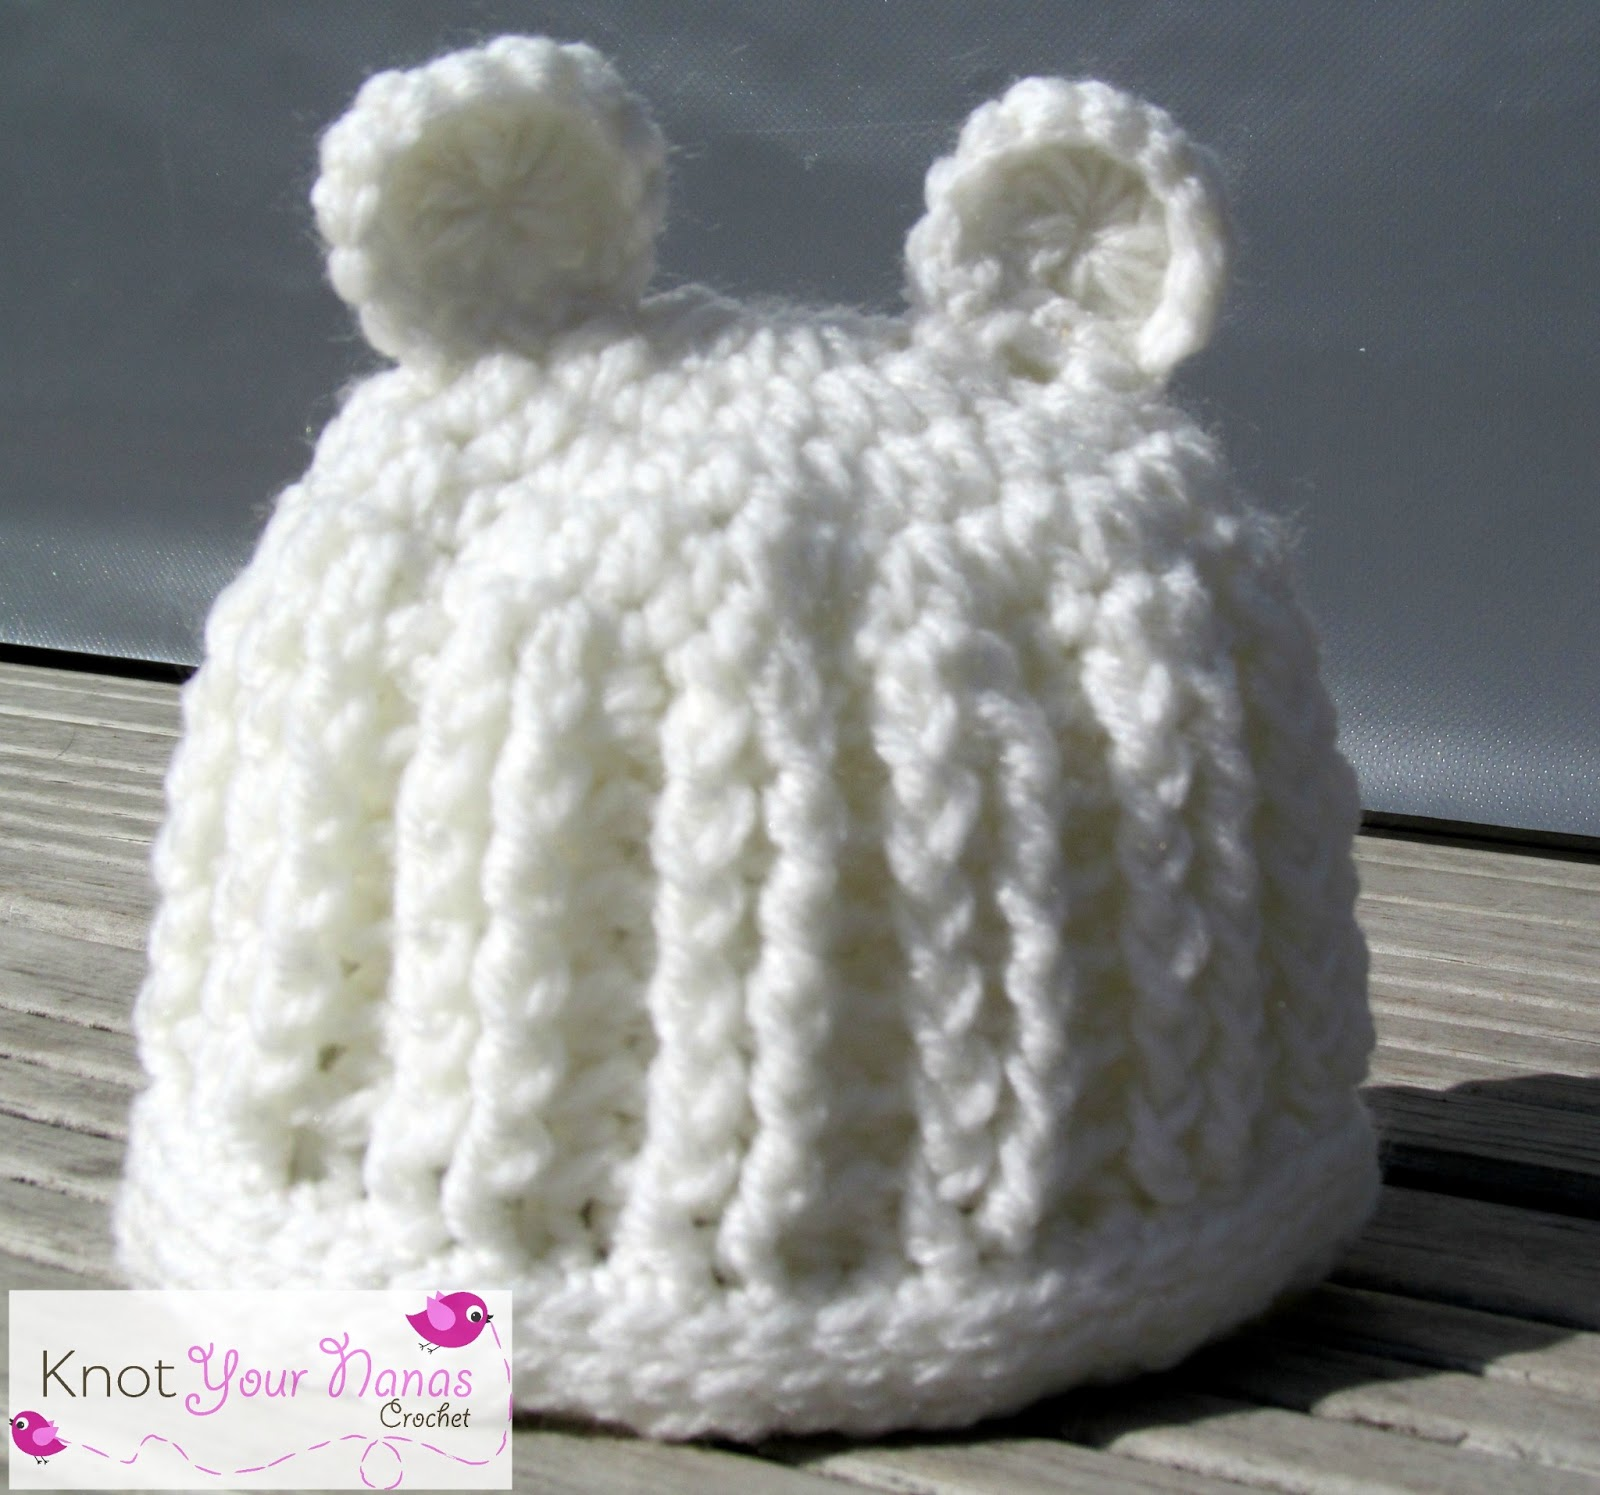 Knot Your Nanas Crochet: Baby Hat